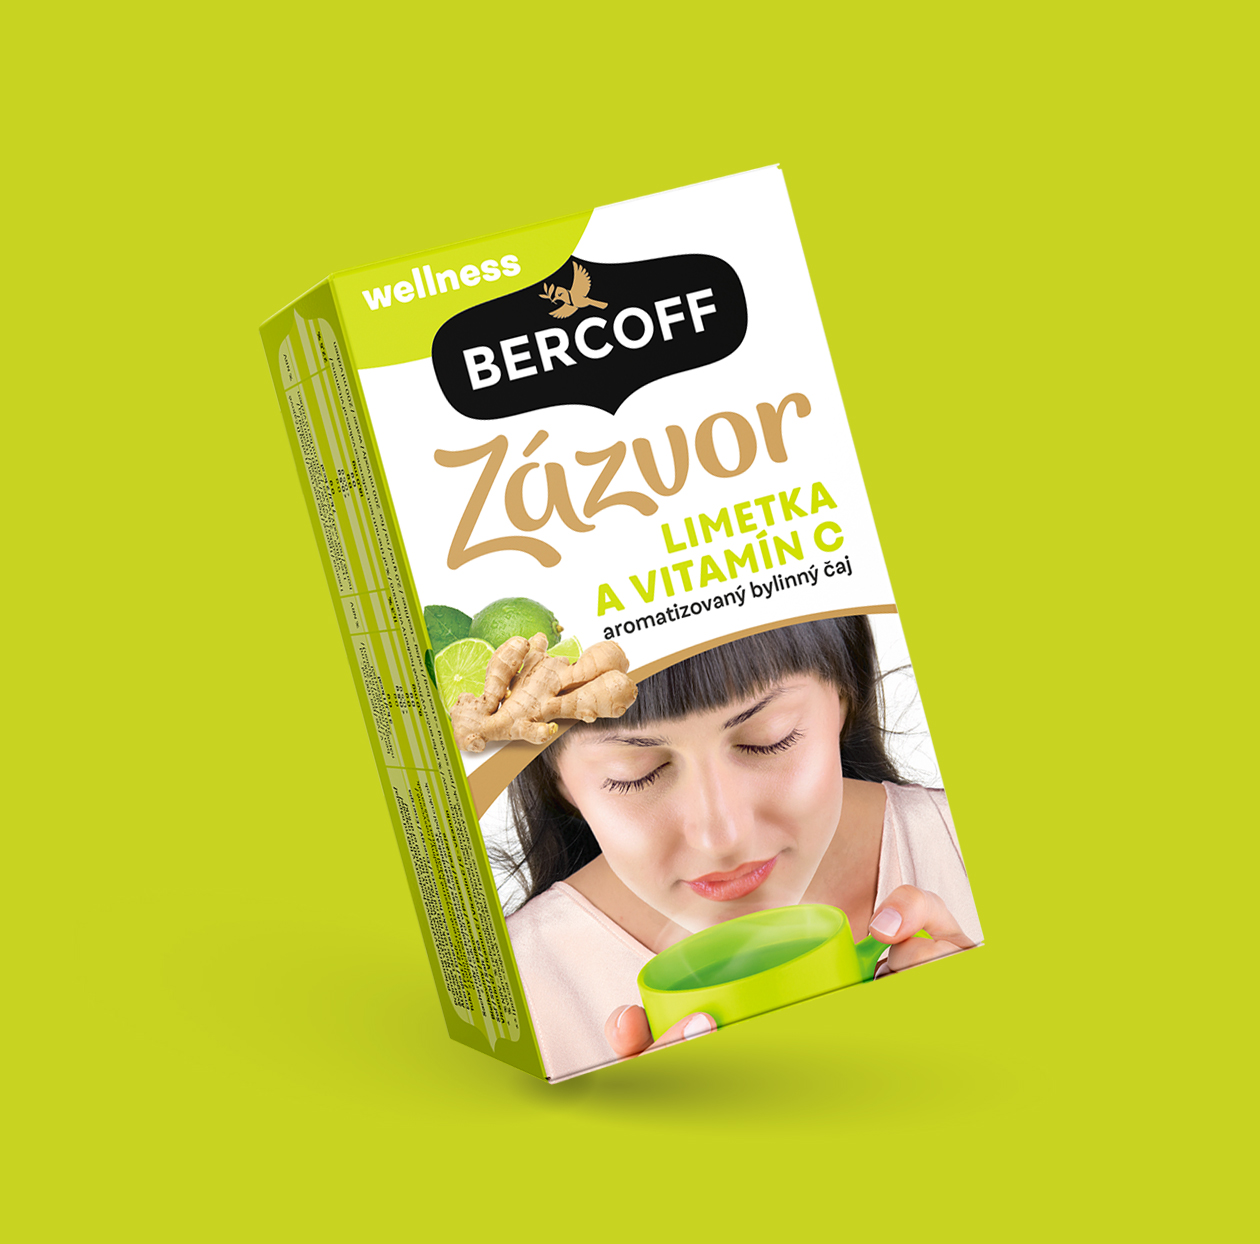 bercoff zazvor packaging